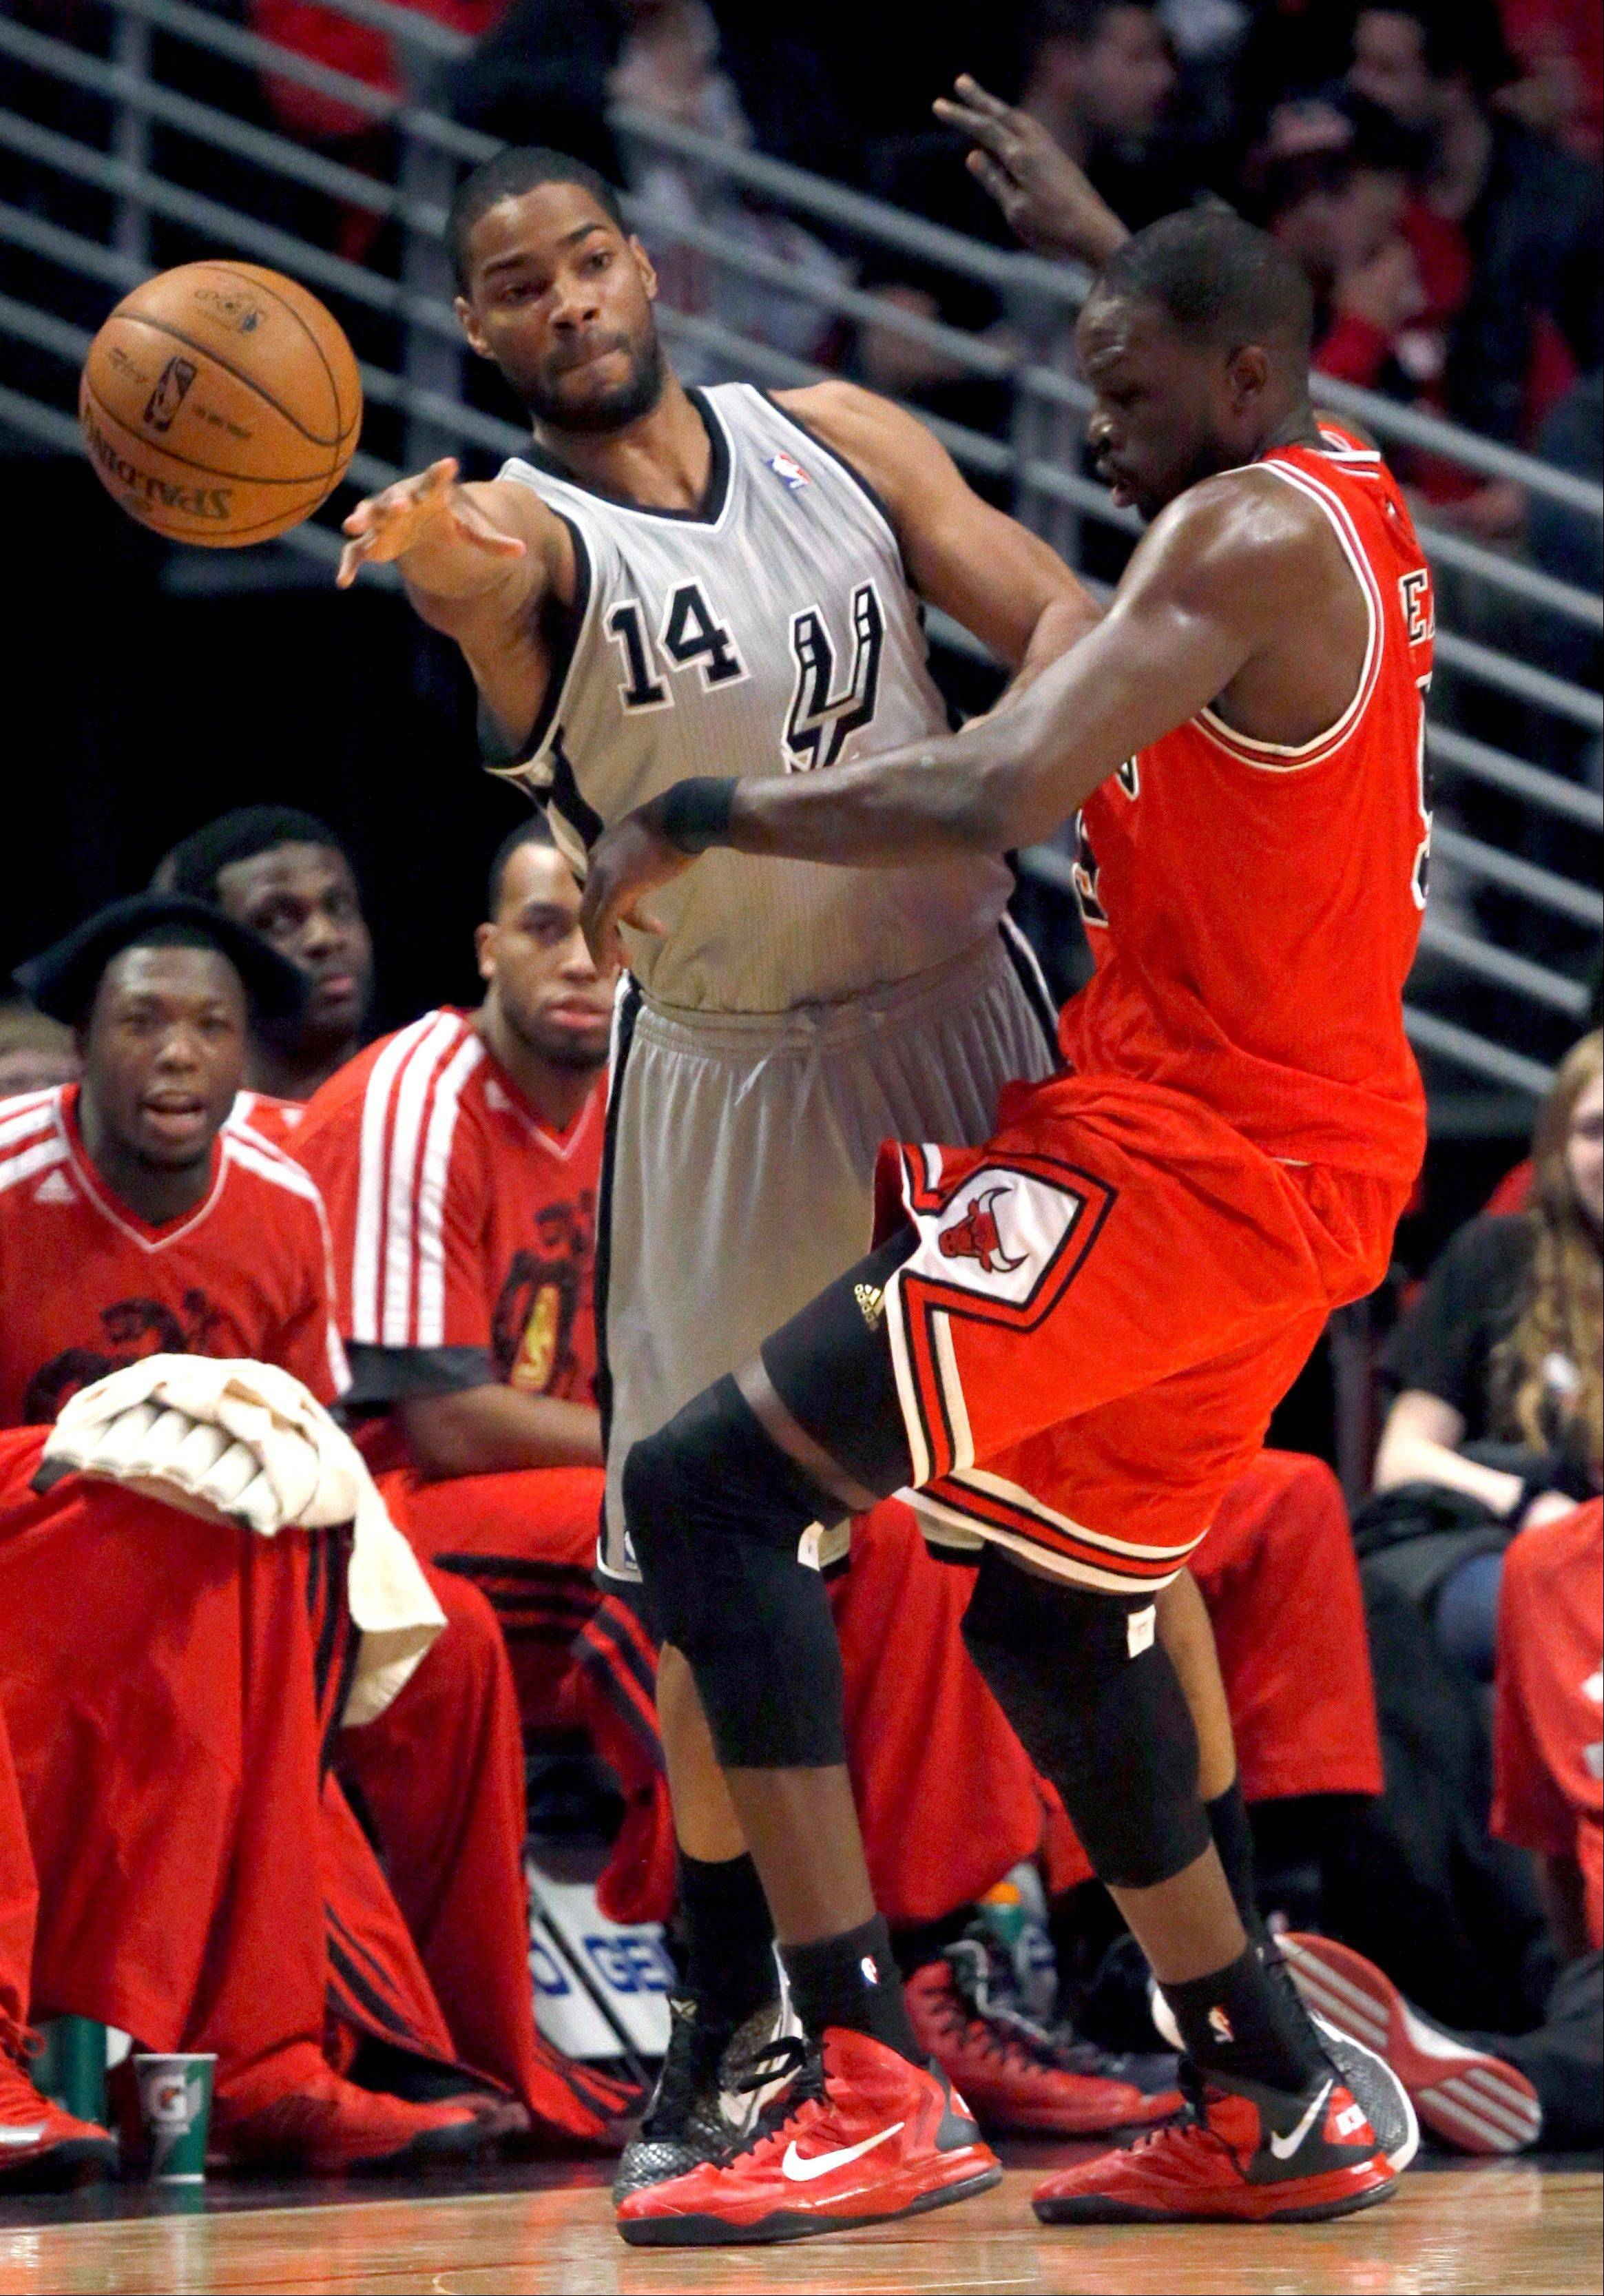 San Antonio Spurs guard Gary Neal (14) passes the ball past Chicago Bulls forward Luol Deng during the first half of an NBA basketball game, Monday, Feb. 11, 2013, in Chicago.